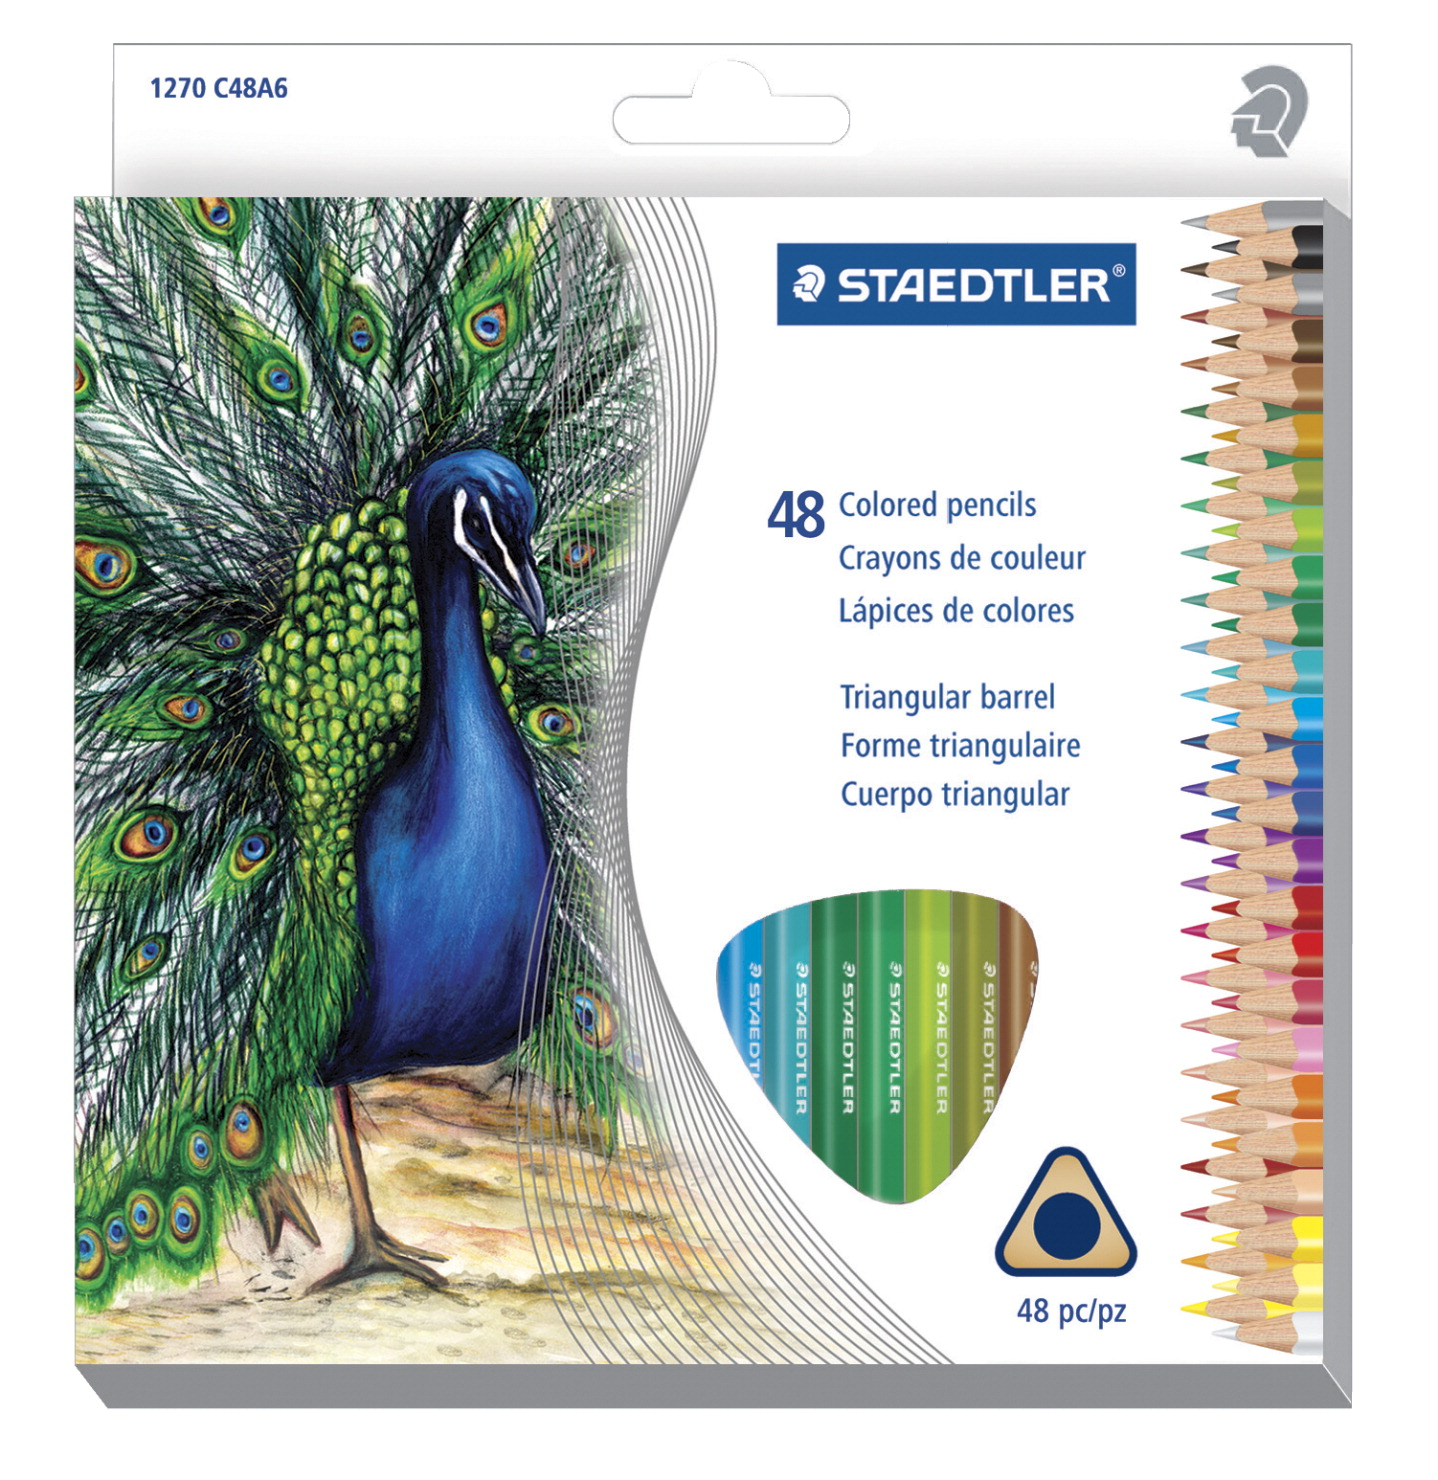 Staedtler Colored Pencils, Set of 48